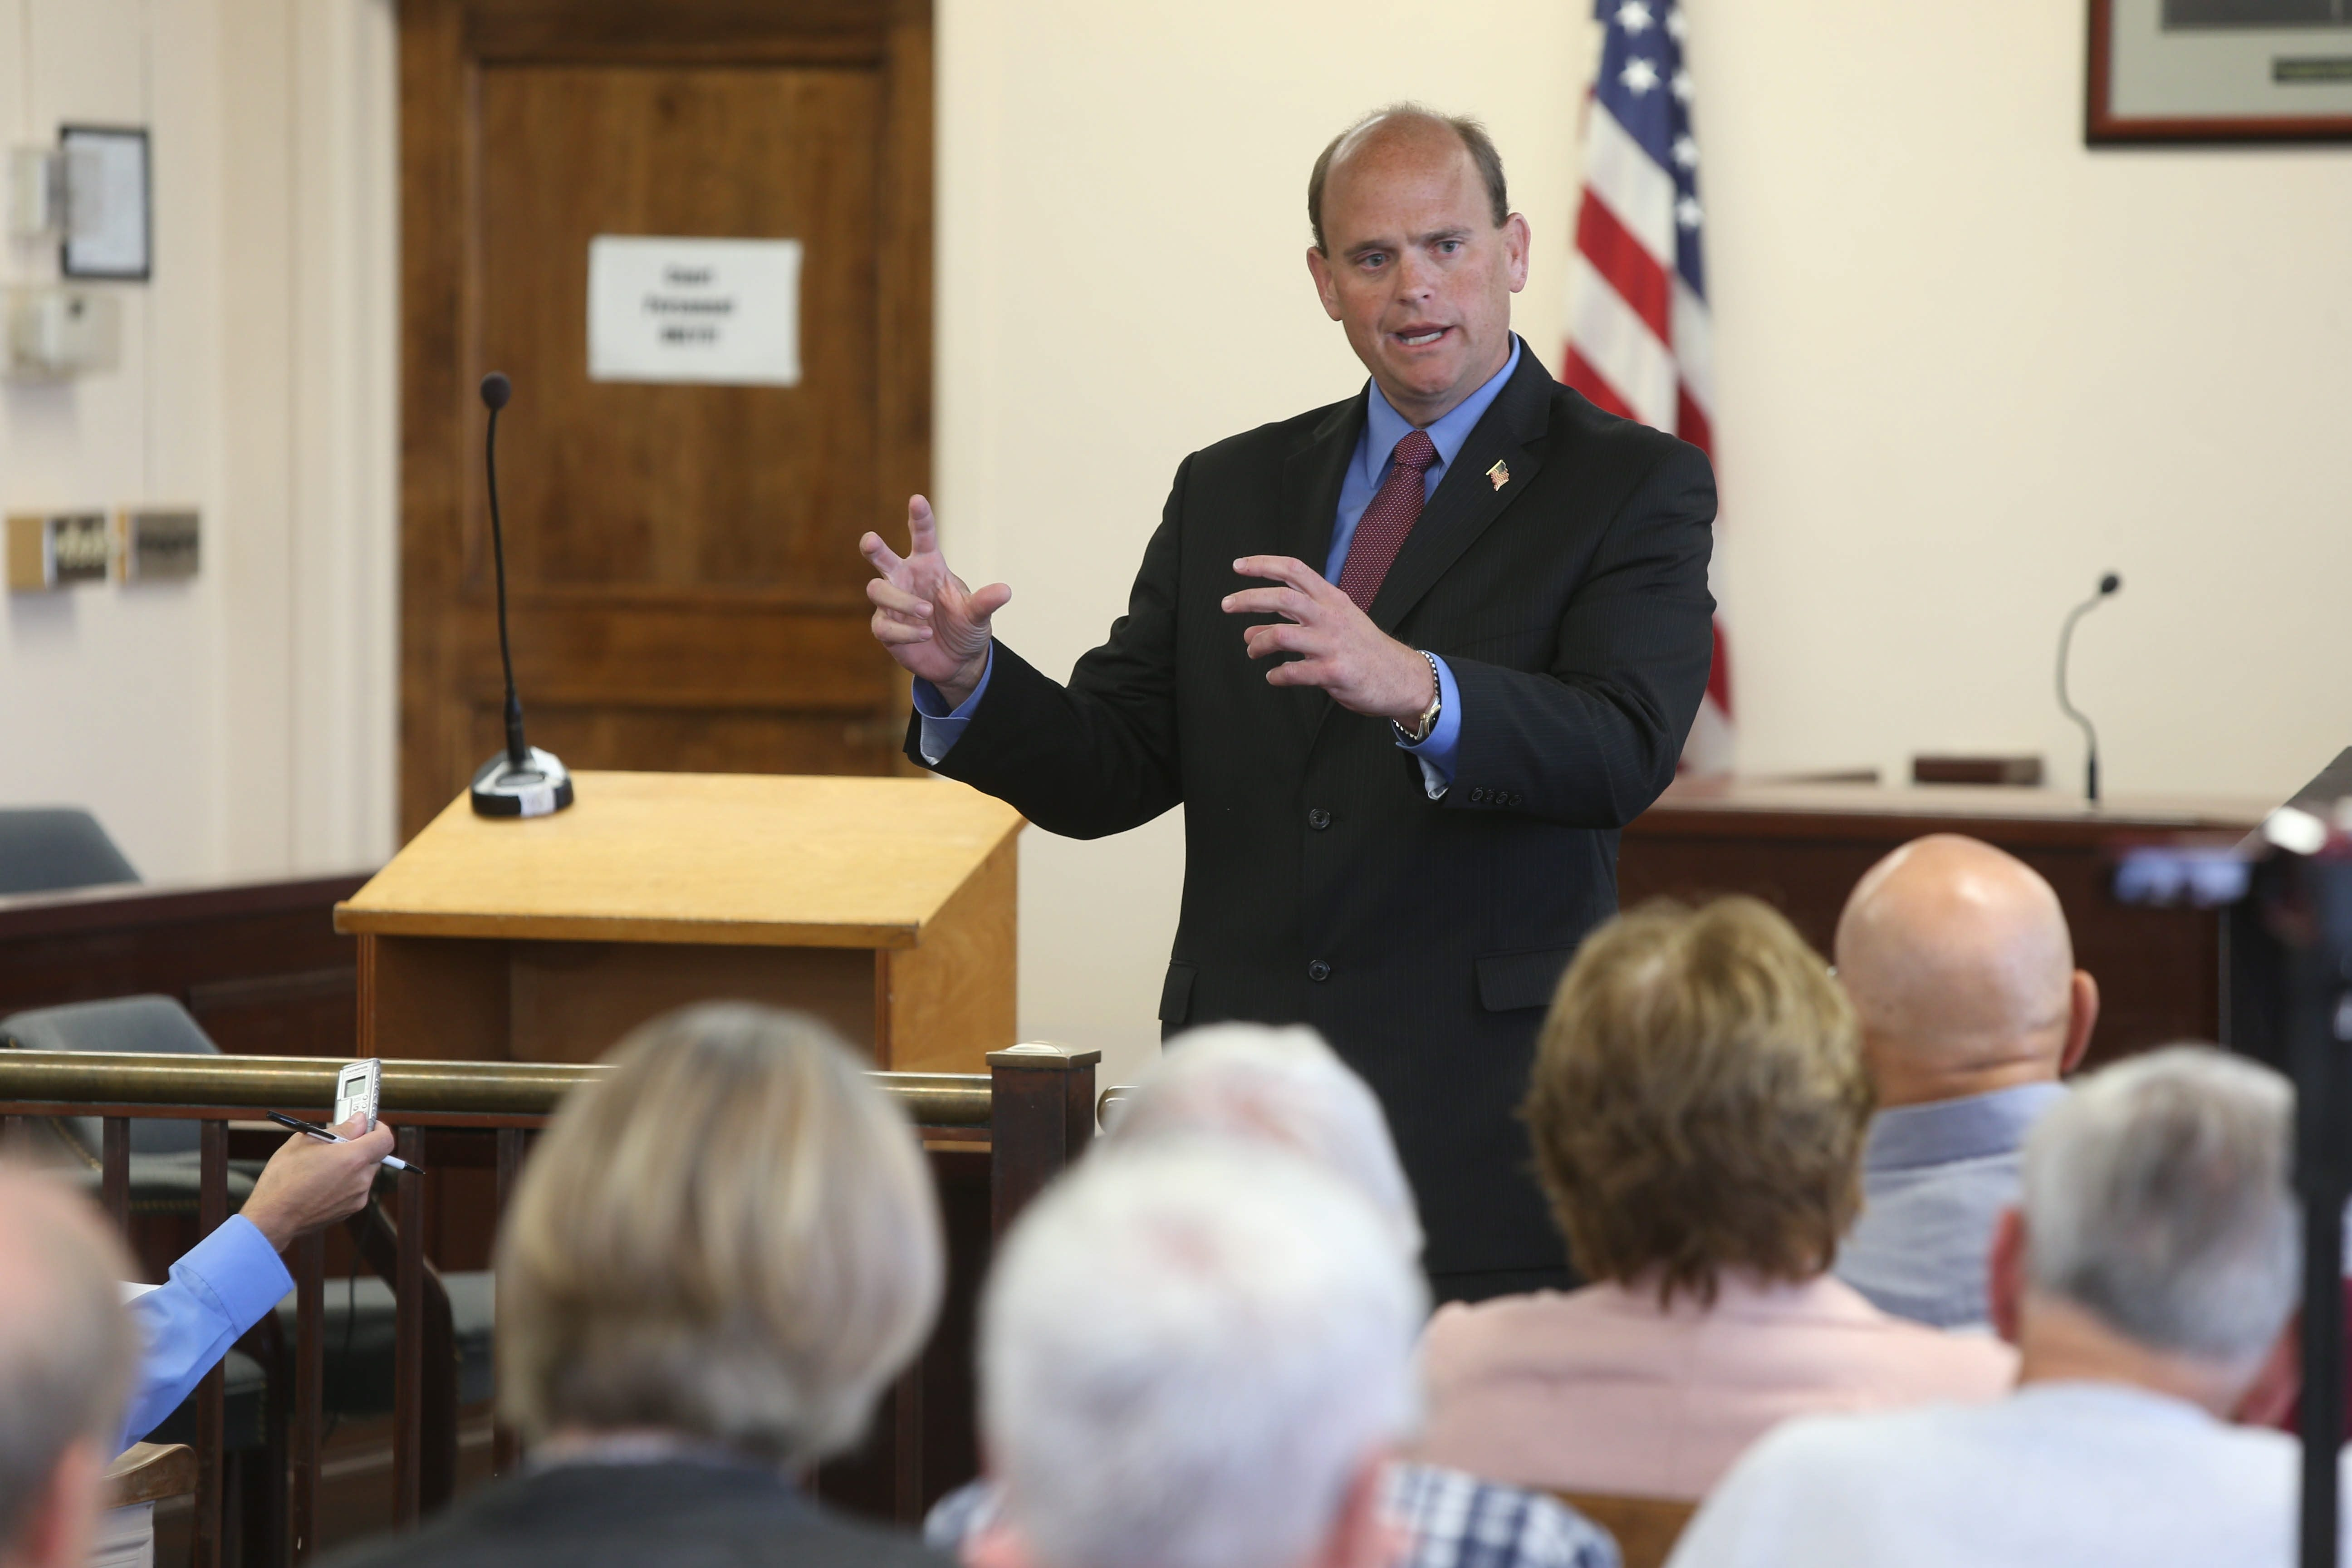 Rep. Tom Reed, R-Corning, at Dunkirk City Hall in one of six meetings with voters in his district this week, explains his opposition to a U.S. attack on Syria as he discusses issue with audience.